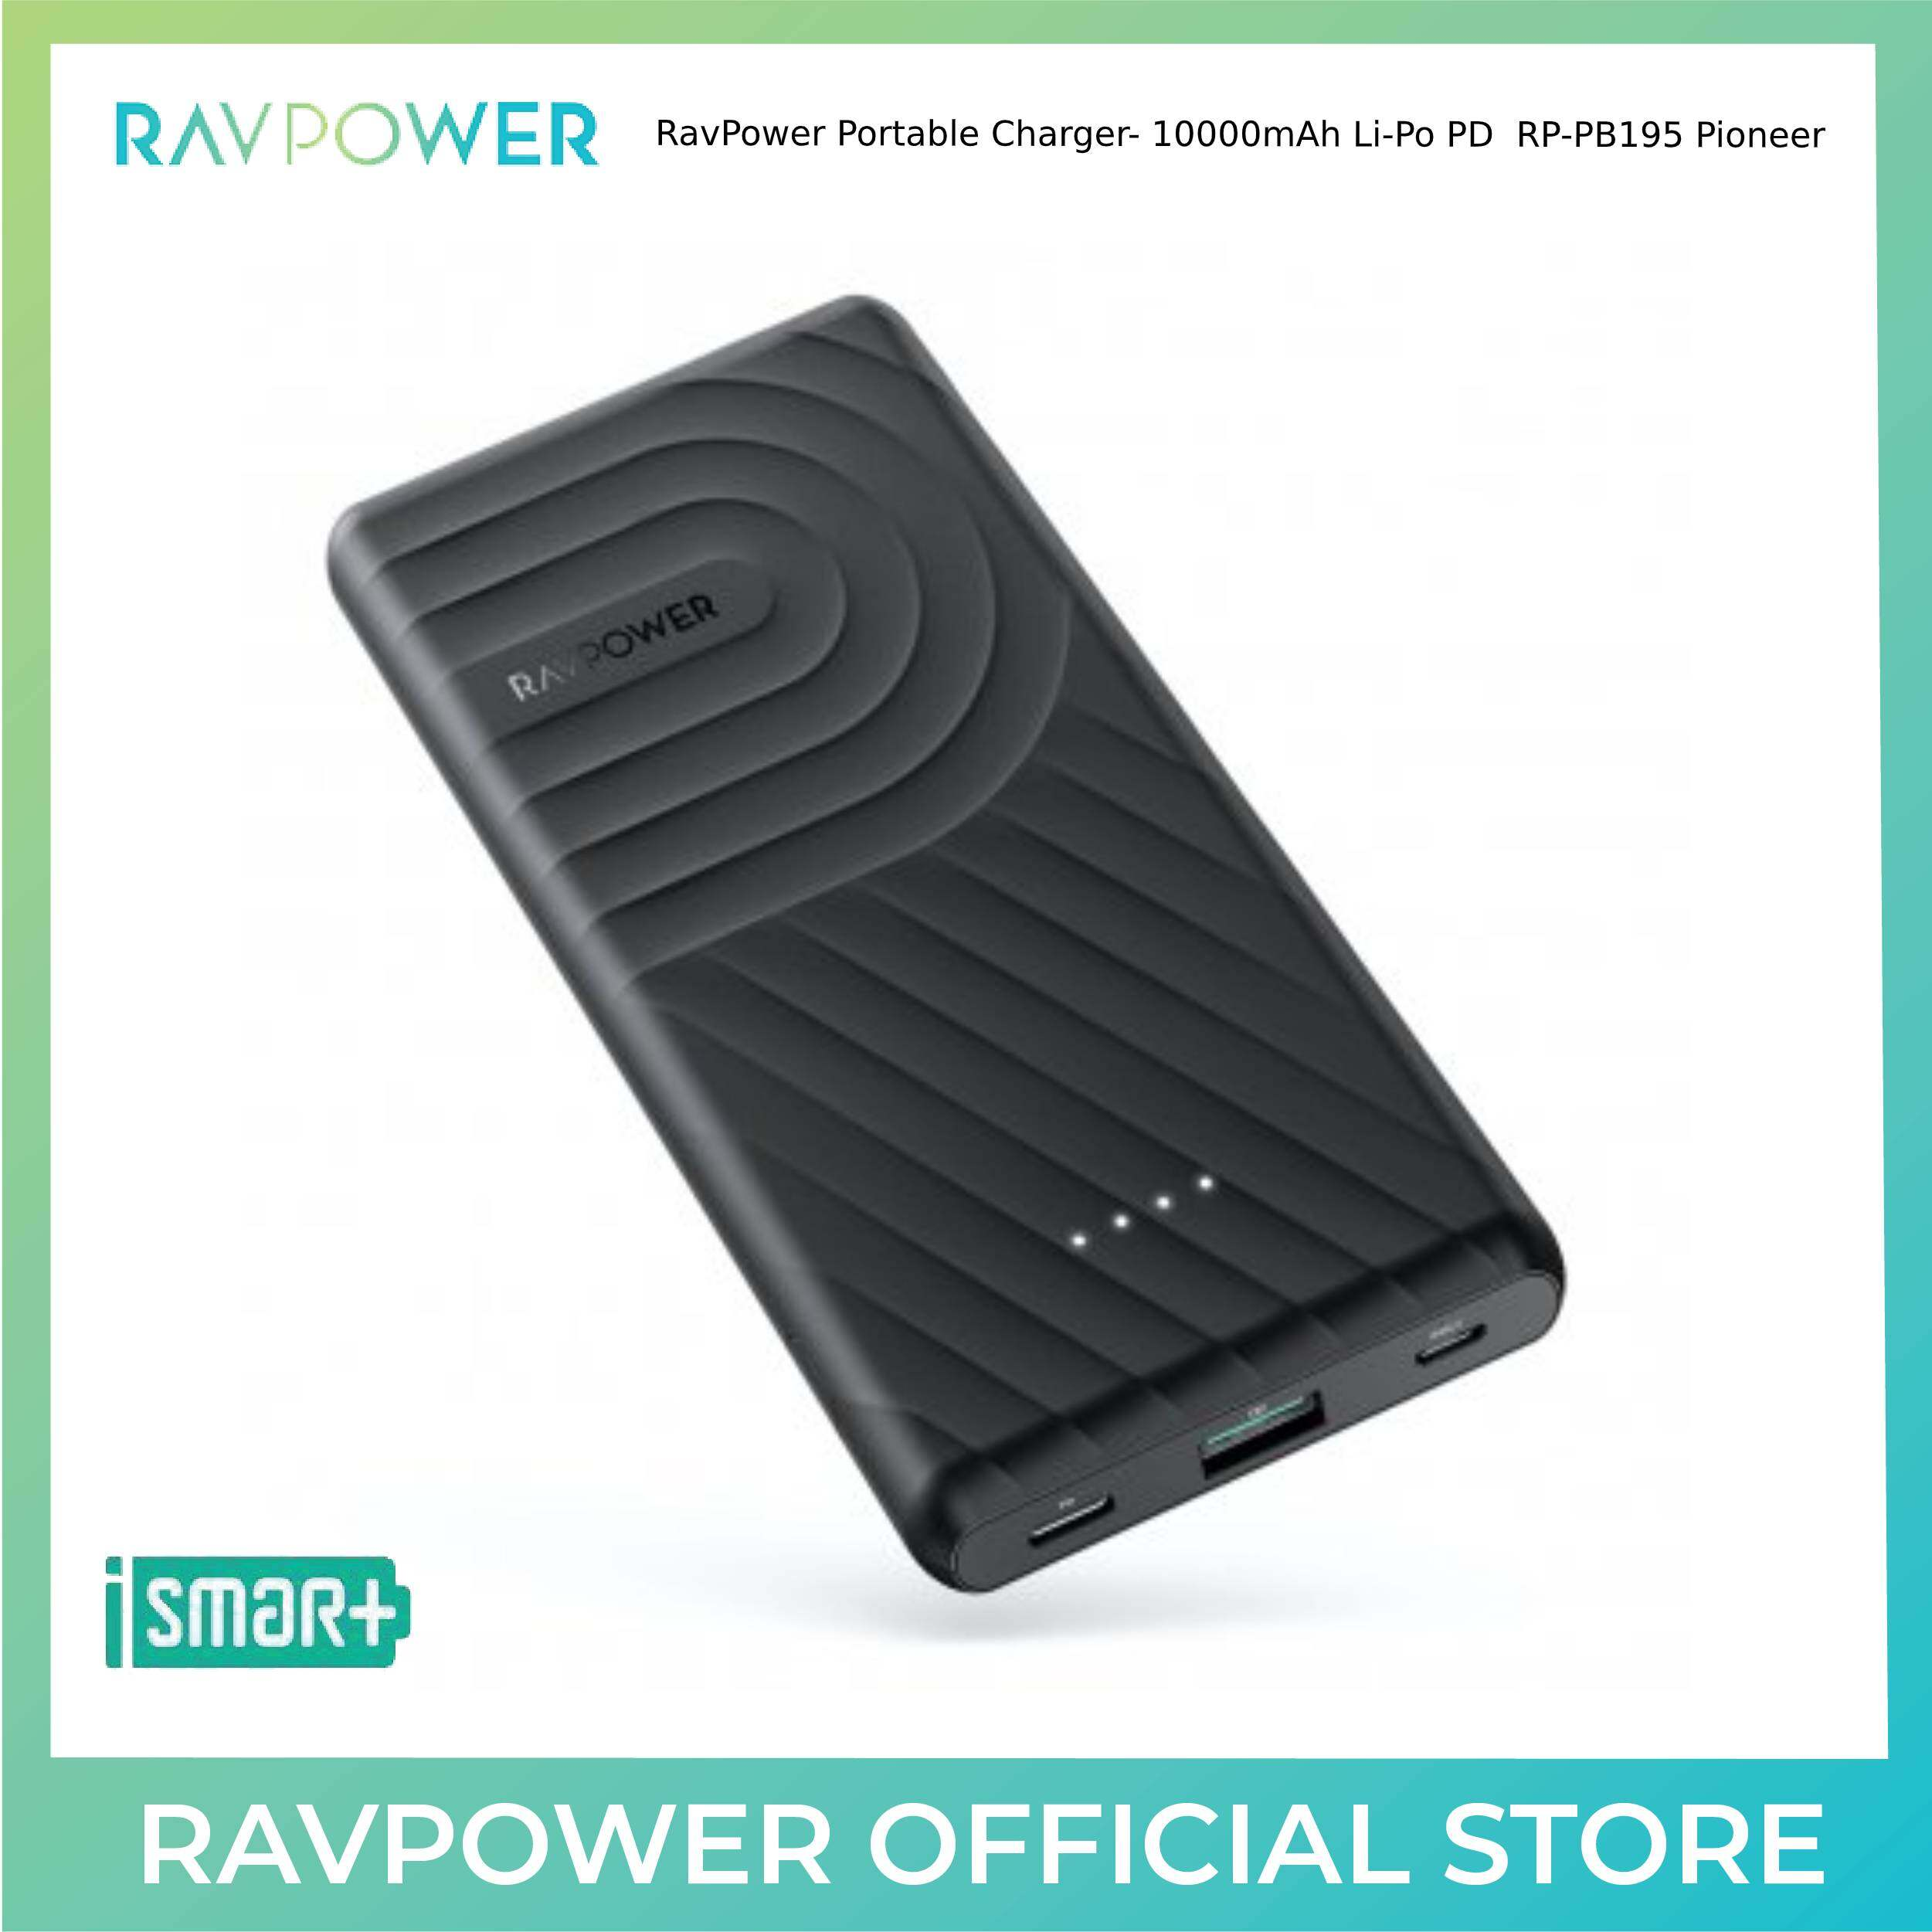 RavPower Portable Charger- 10000mAh Li-Po PD Pioneer